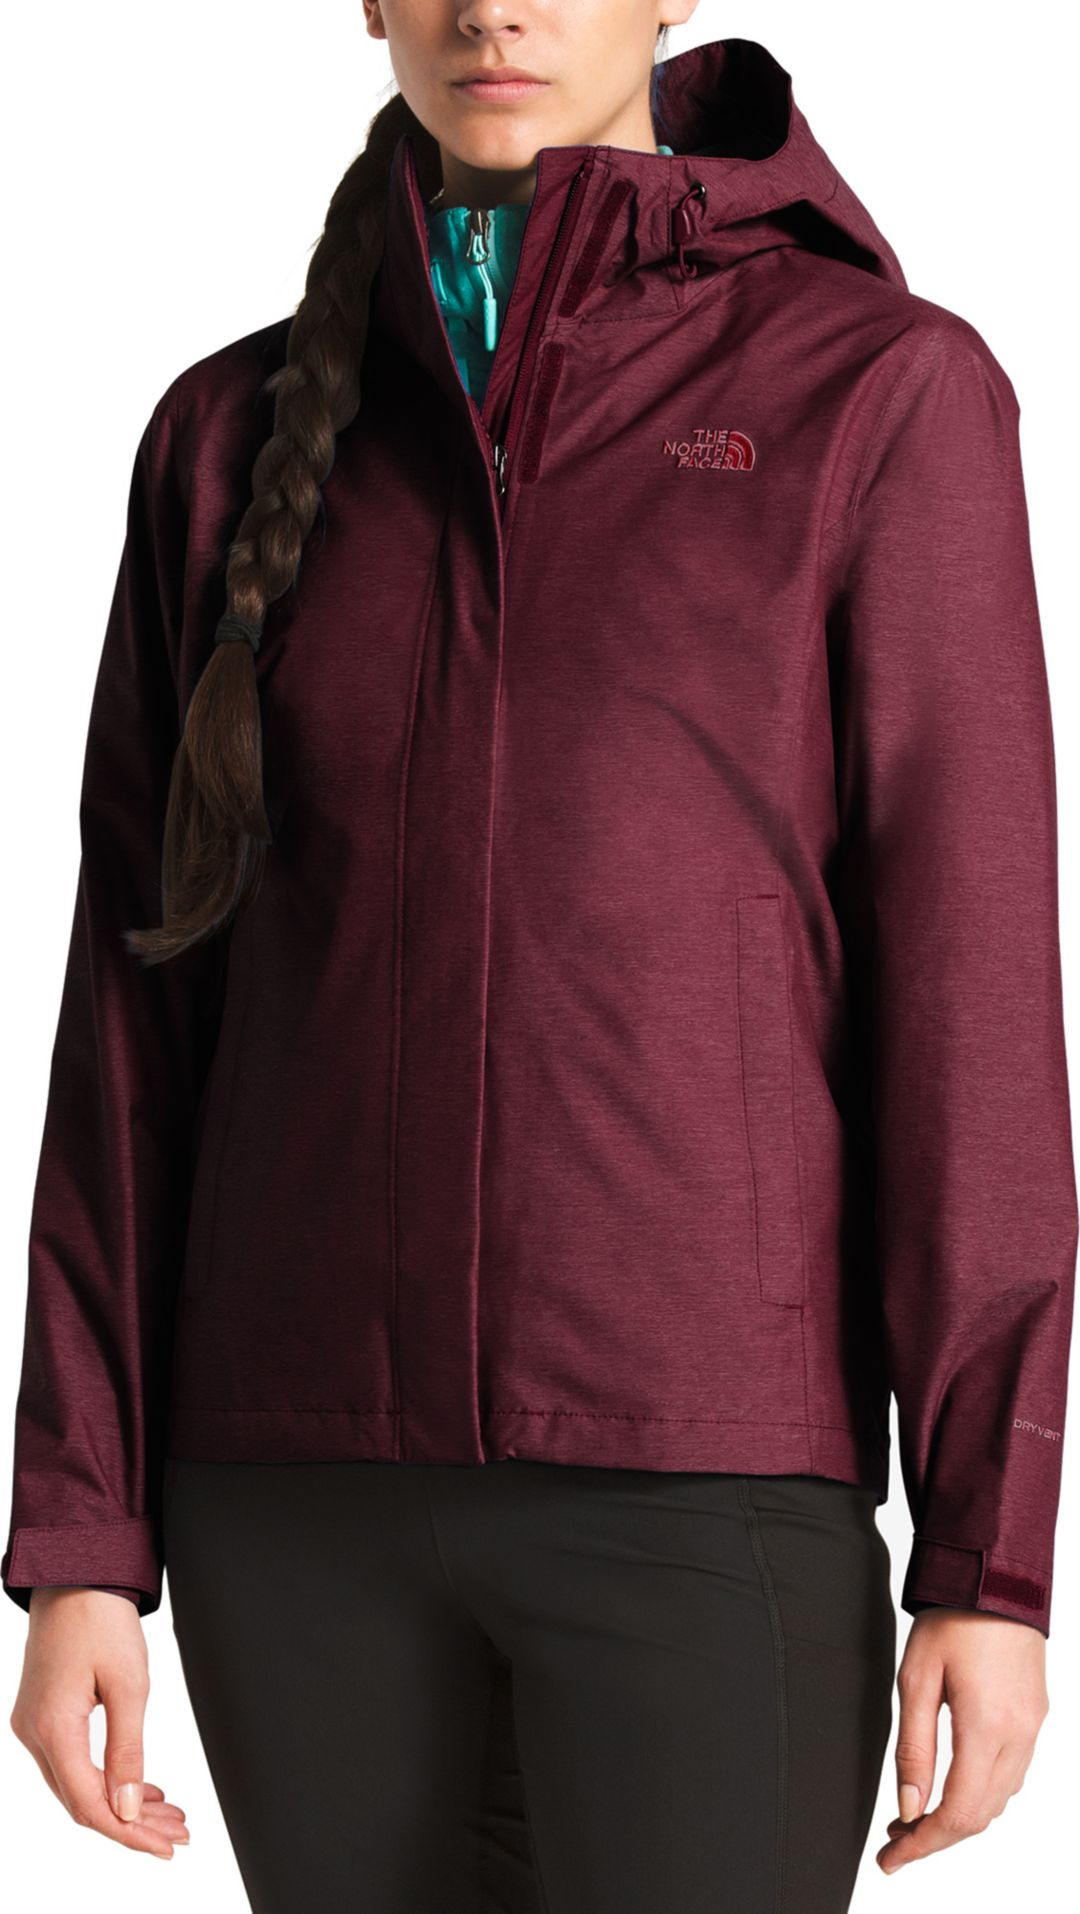 c9c21576a07 The North Face Women s Venture 2 Jacket 1